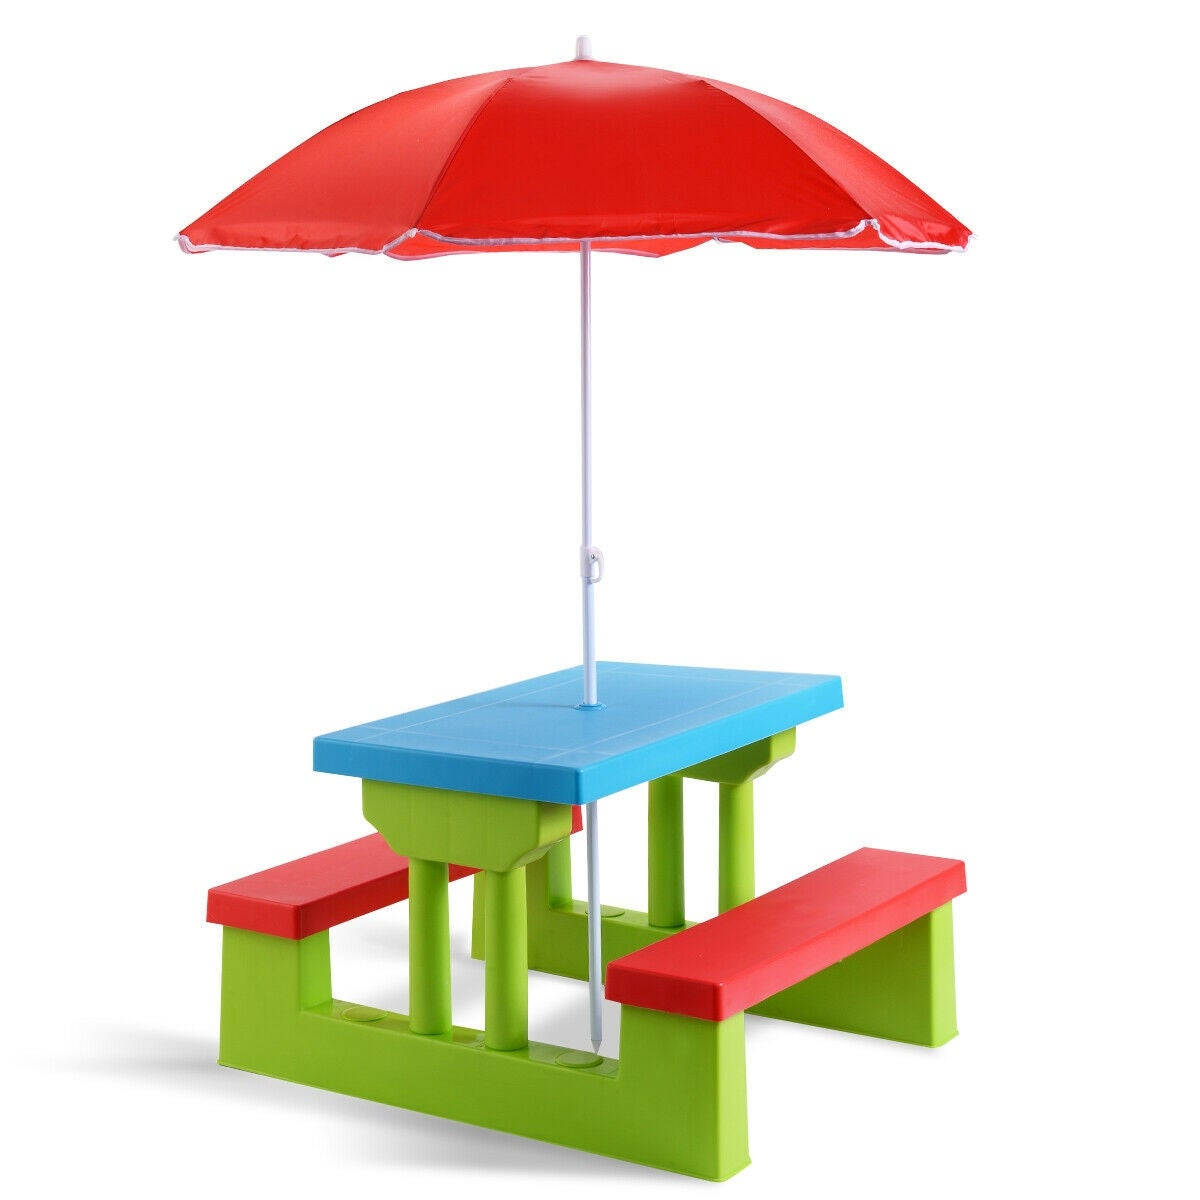 Stupendous Buy Kids Outdoor Furniture Online At Overstock Our Best Gmtry Best Dining Table And Chair Ideas Images Gmtryco